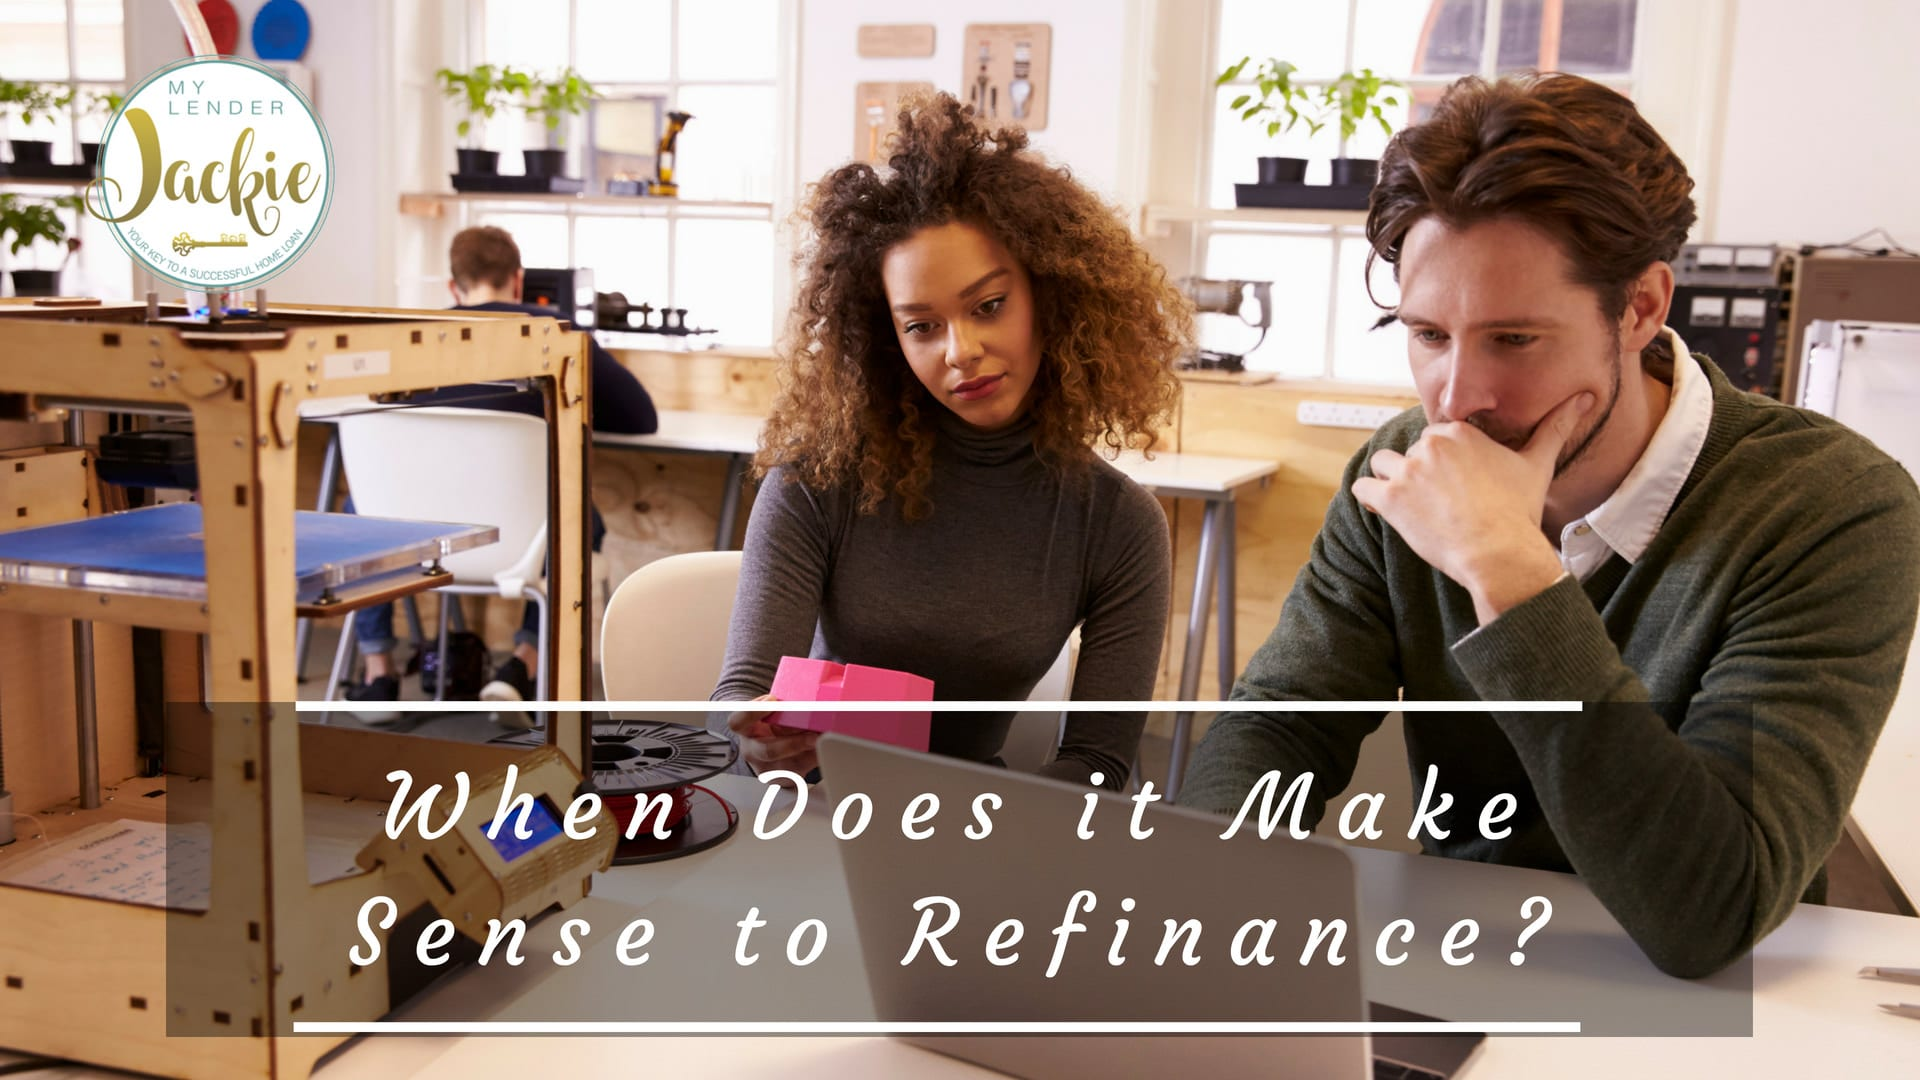 When Does it Make Sense to Refinance?